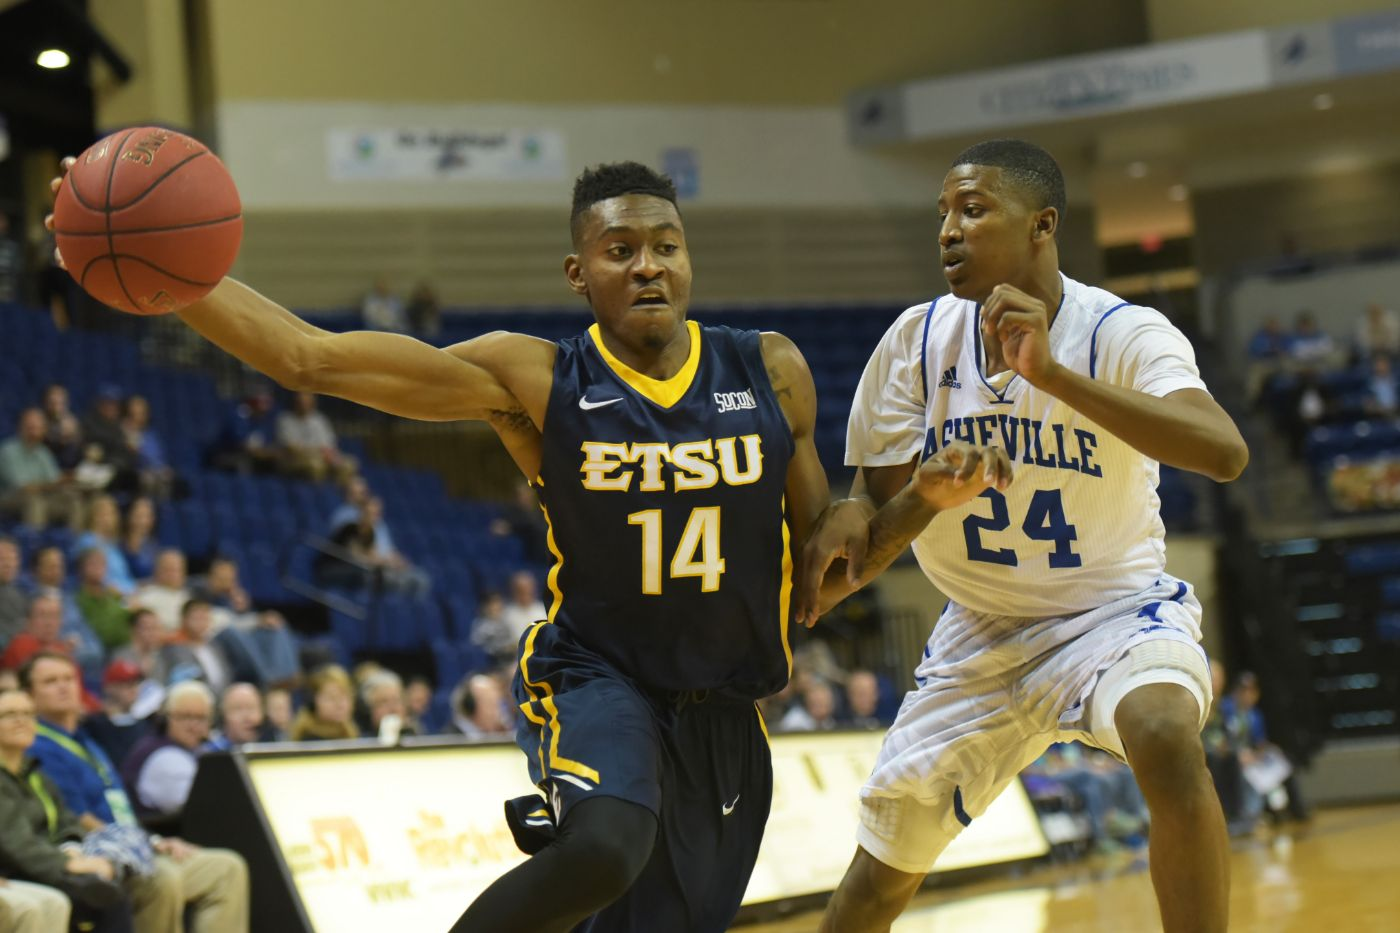 ETSU road woes continue in 84-64 loss to Asheville